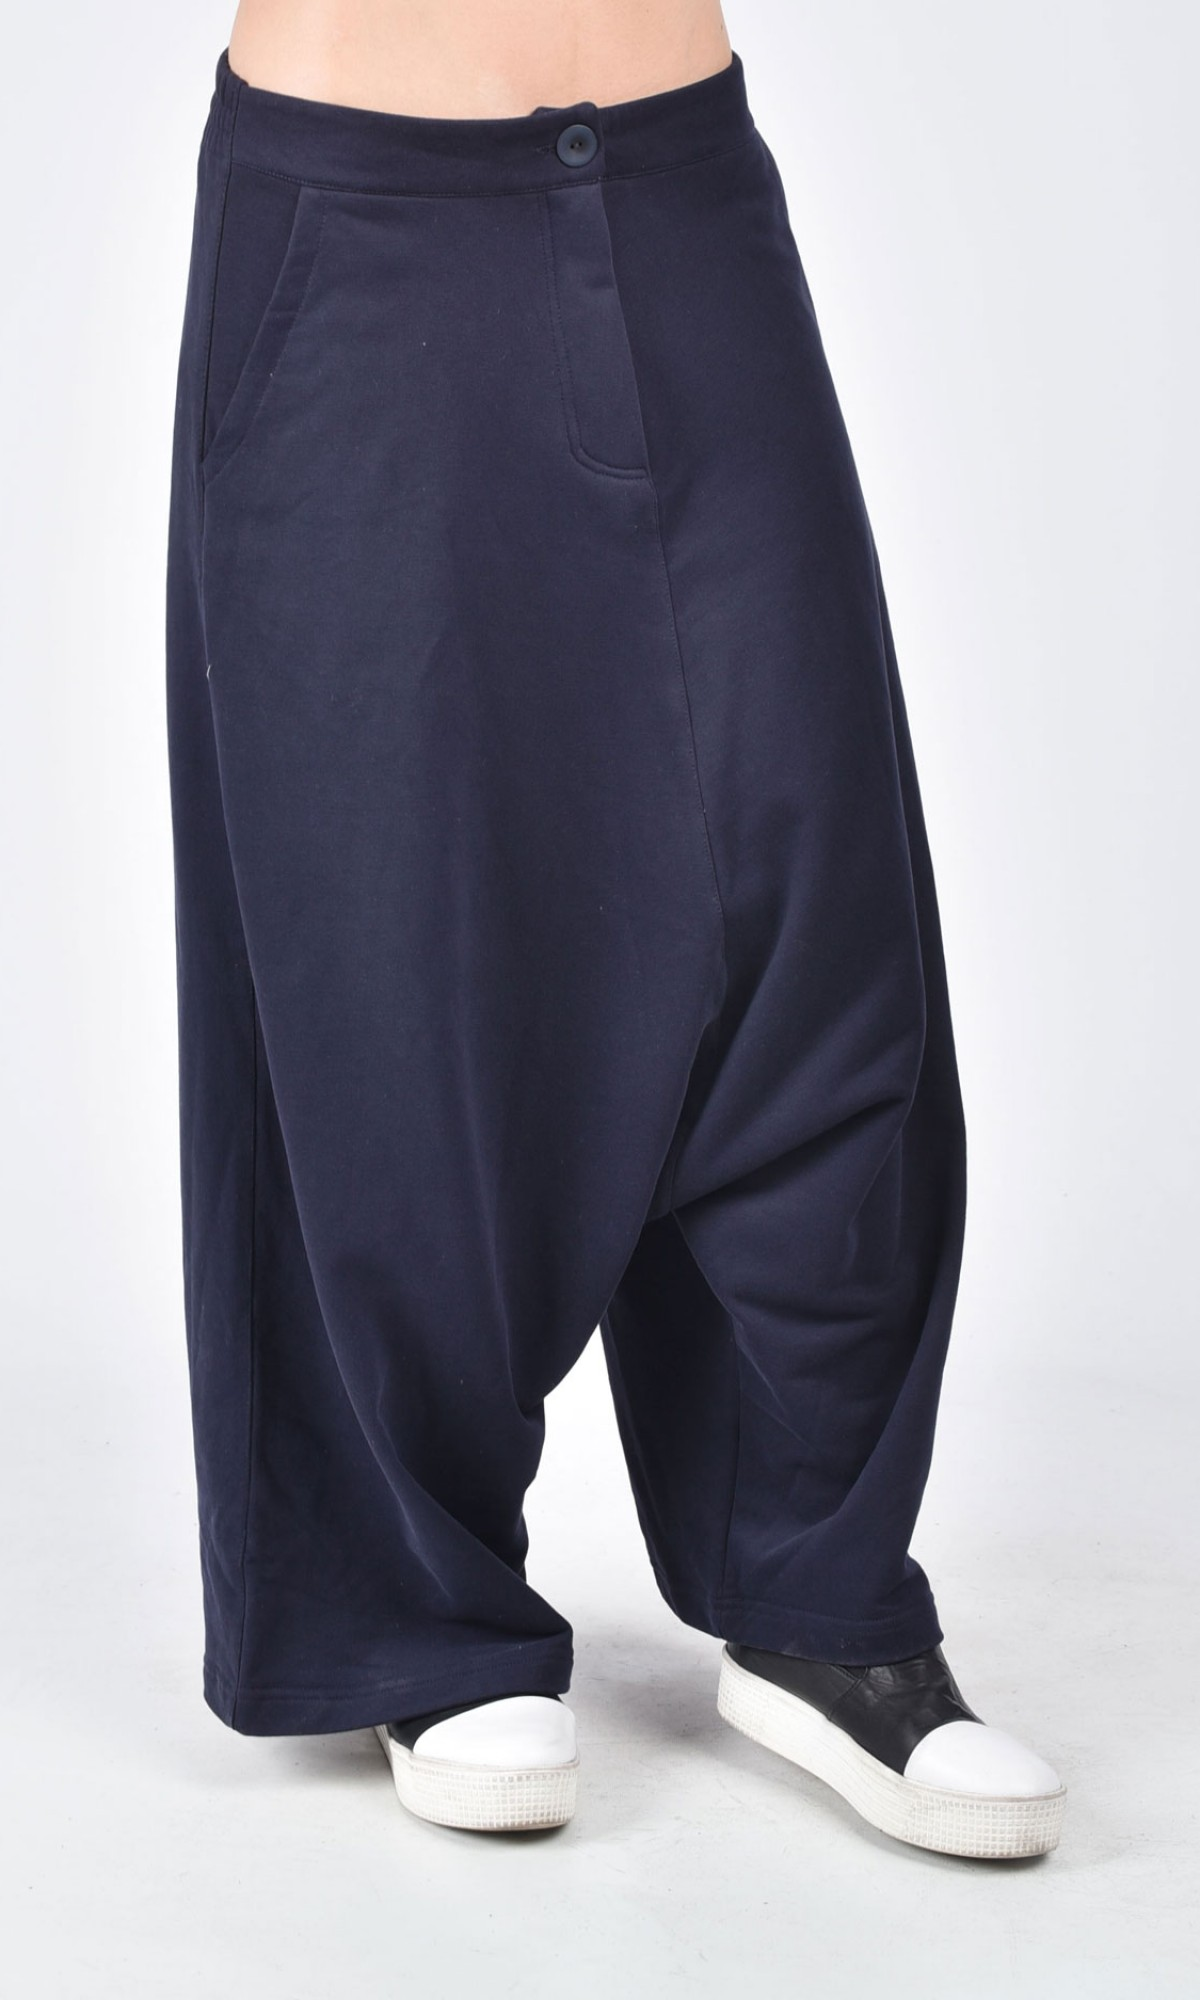 Harem pants feature a dropped crotch that reaches approximately 2 to 3 inches above the knee with an immediate tapered fit down the rest of the leg. Drop crotch pants are easy to wear, comfortable, and flattering for most body types from the loose fit around the hips.